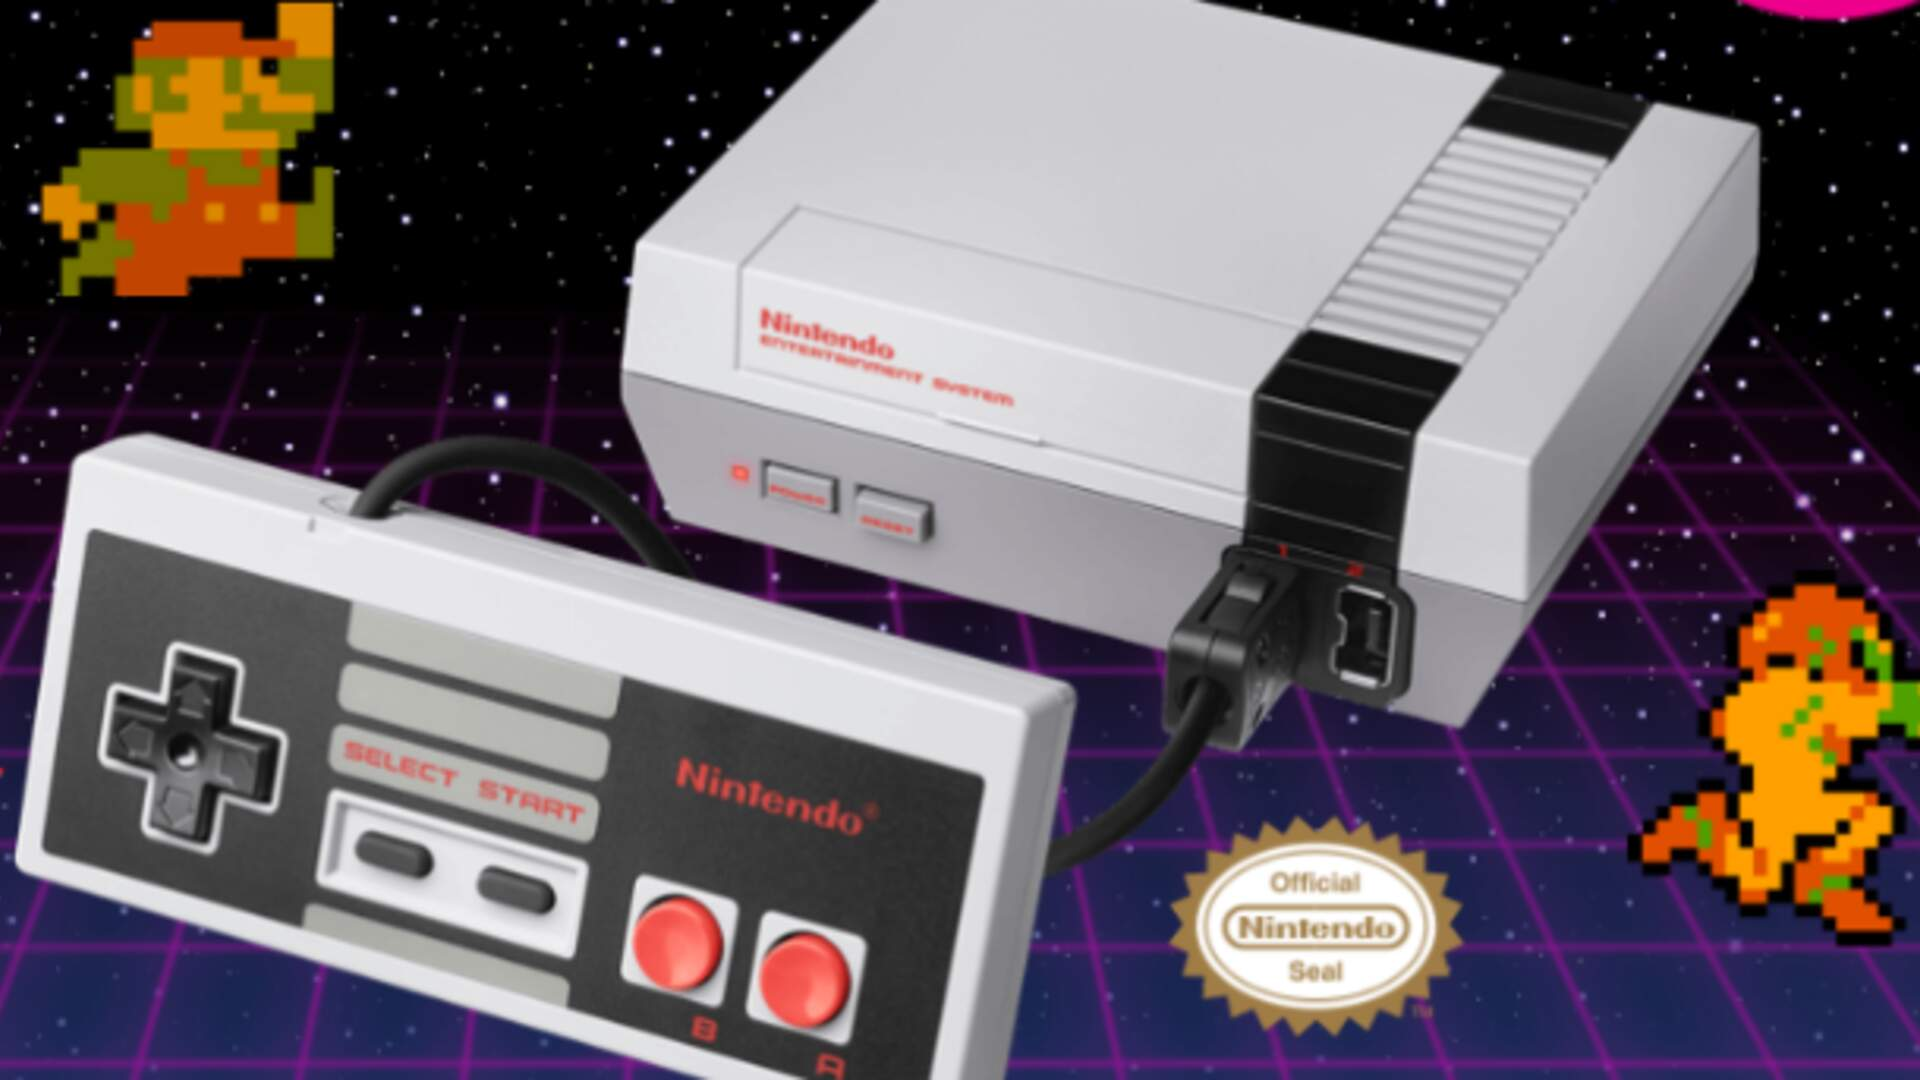 Nintendo NES Classic is Available: Here's Where to Buy One